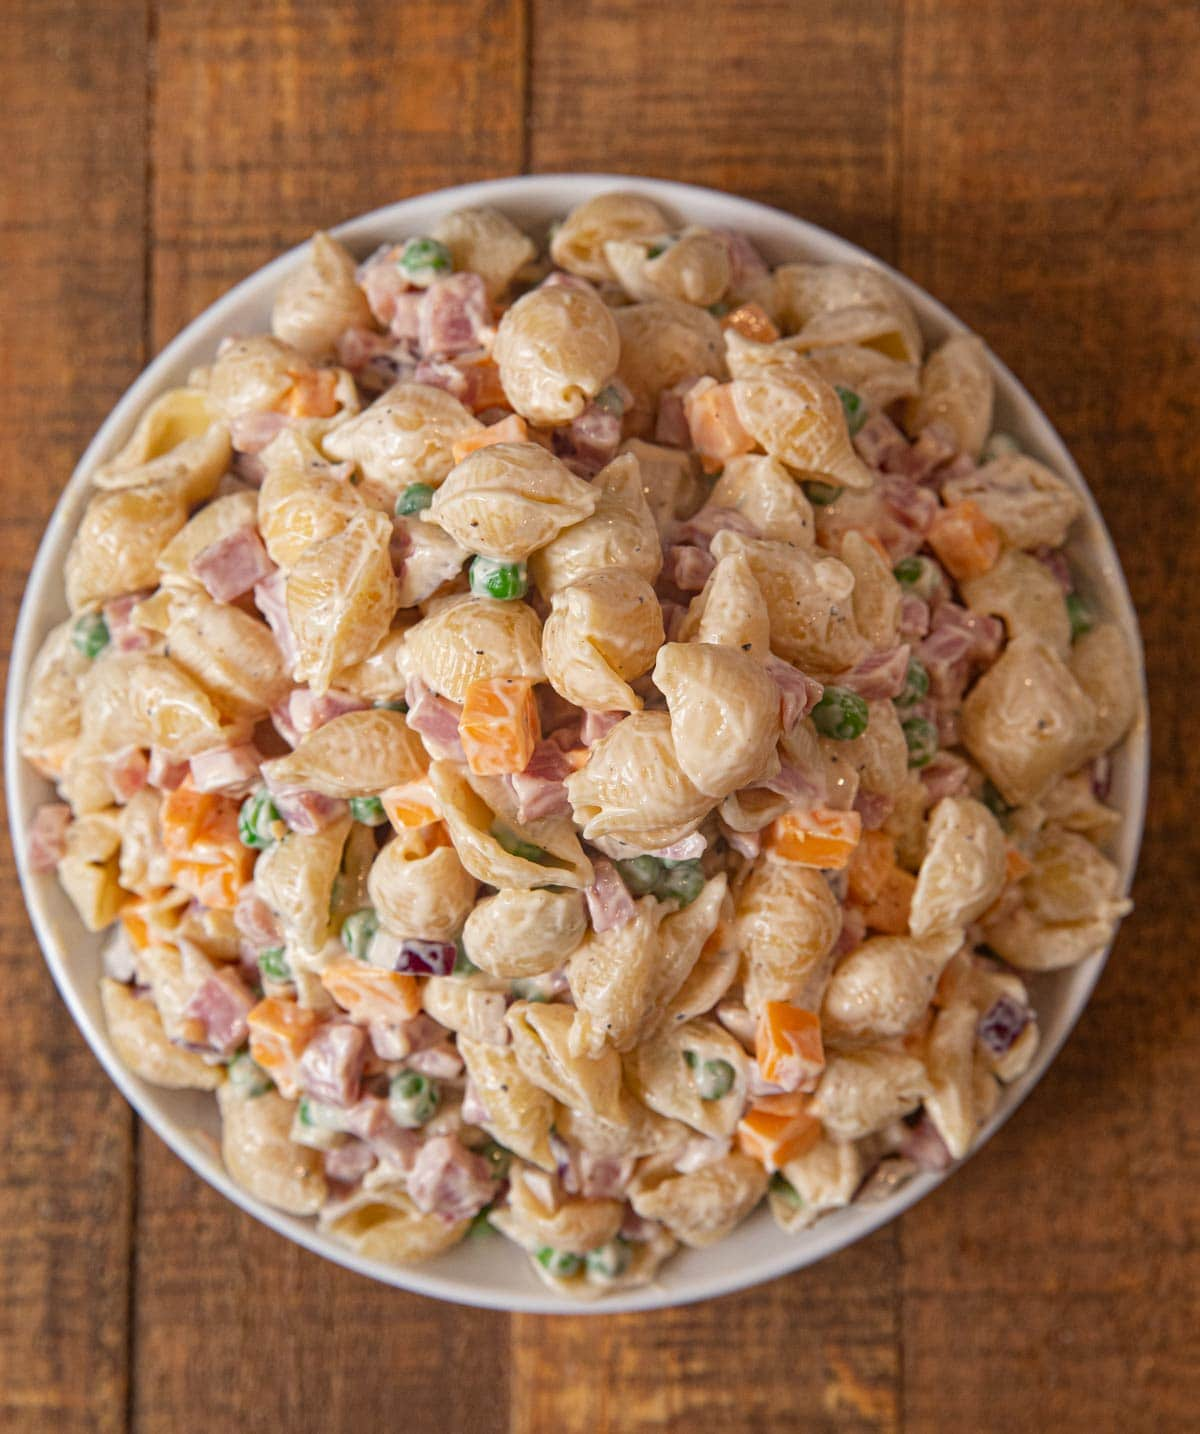 Ham and Cheese Pasta Salad in bowl